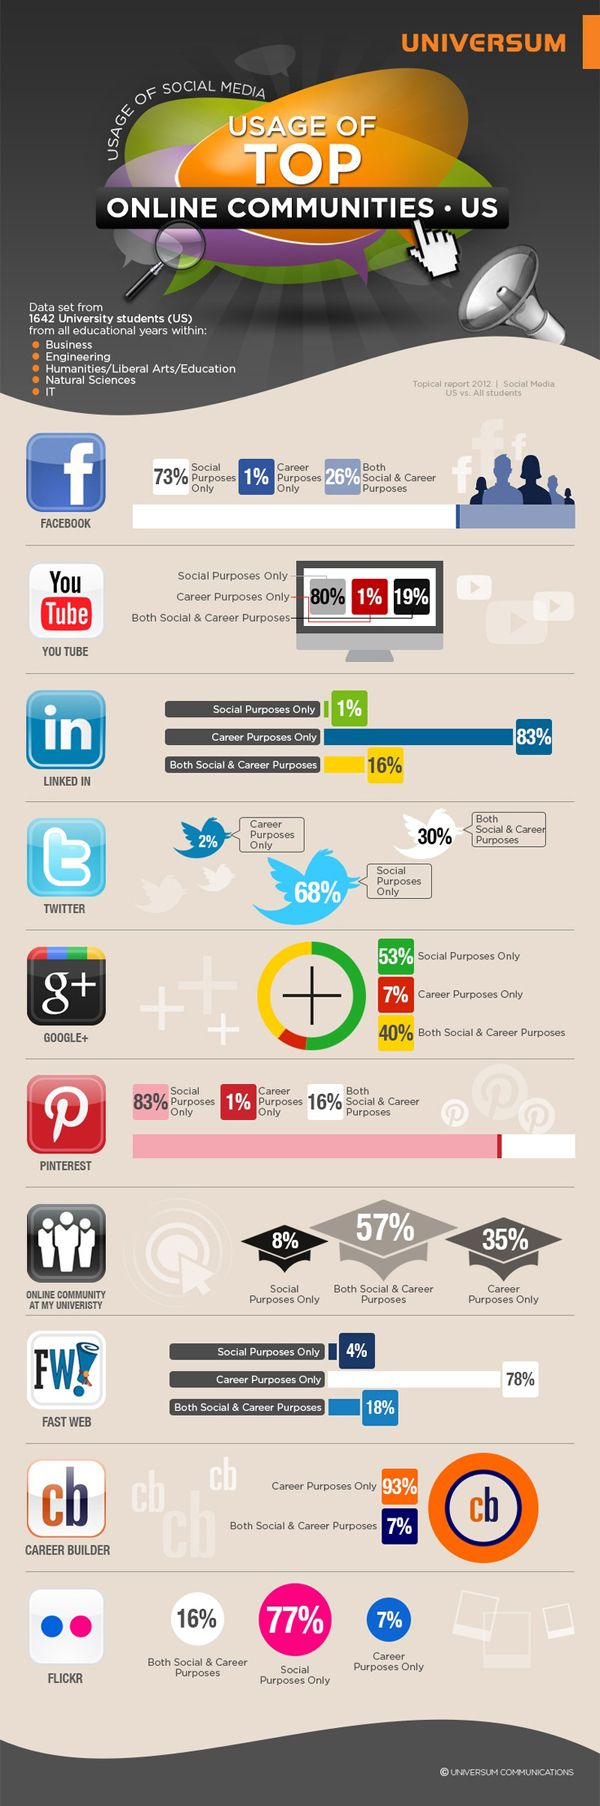 Perfect Social Media Recruiting Strategies: Recommendations From Students Surveyed